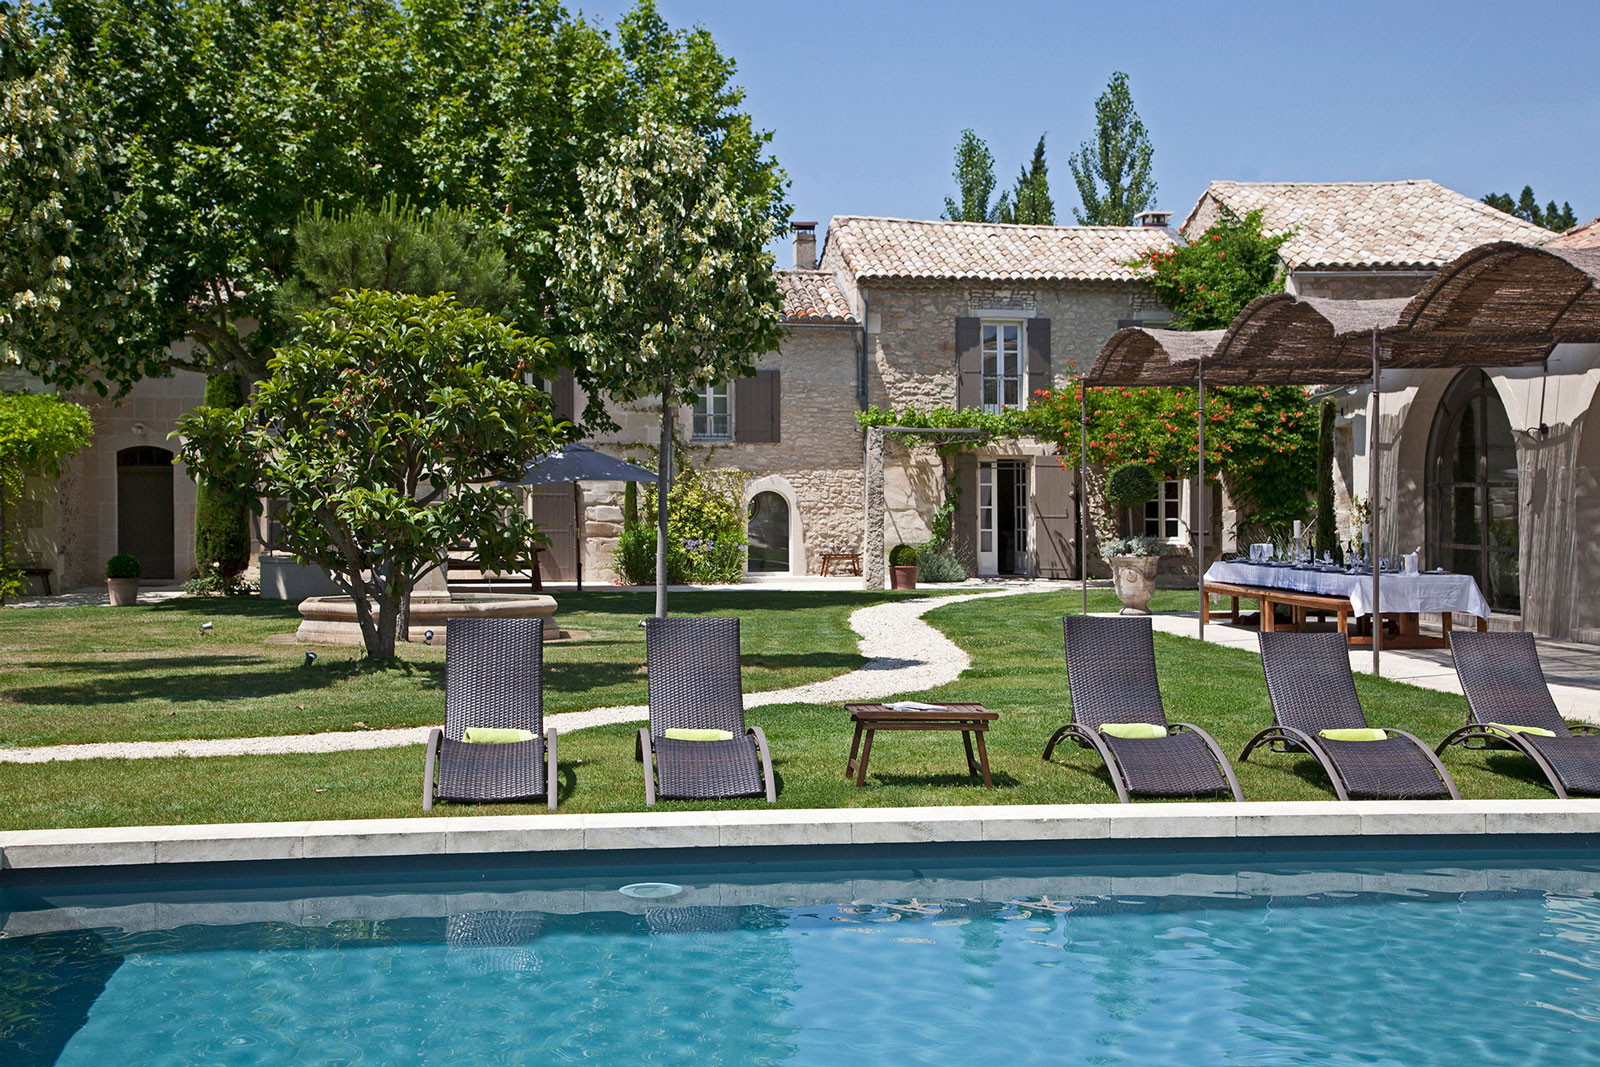 Provence Holiday Villa, Private Pool, Walking Distance to Restaurants